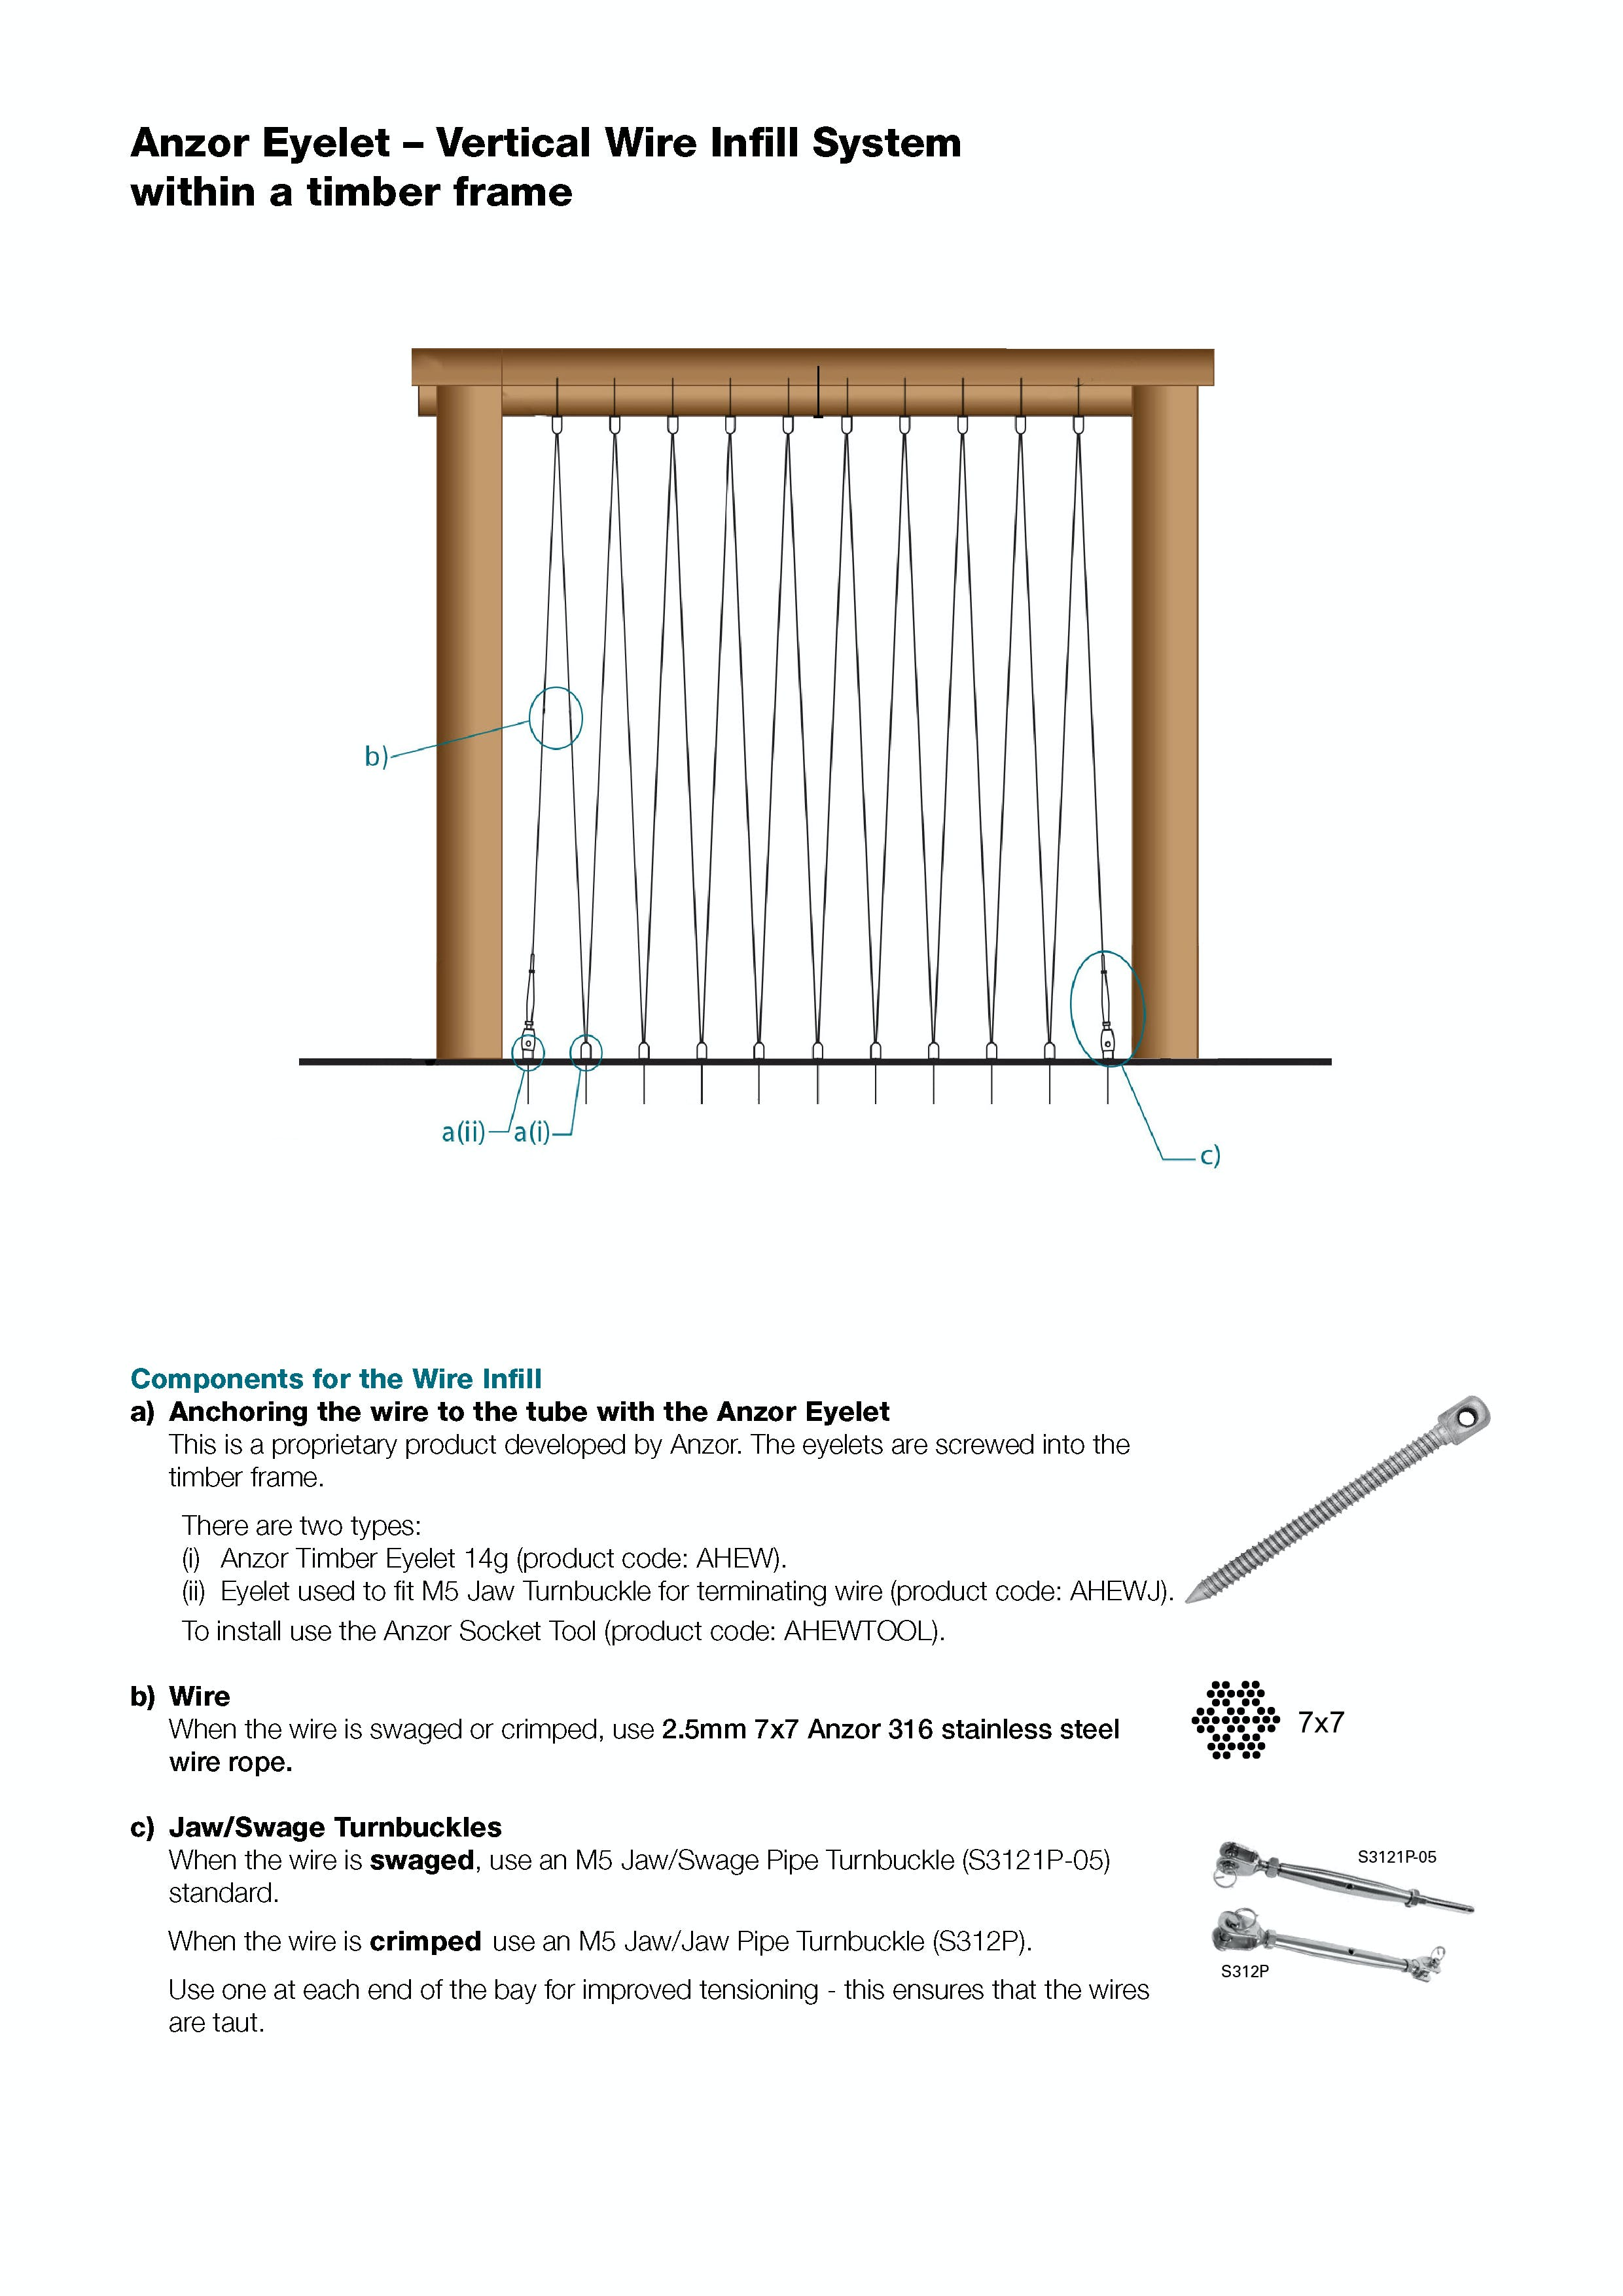 Stainless Vertical Wire Infill System for Timber Frame